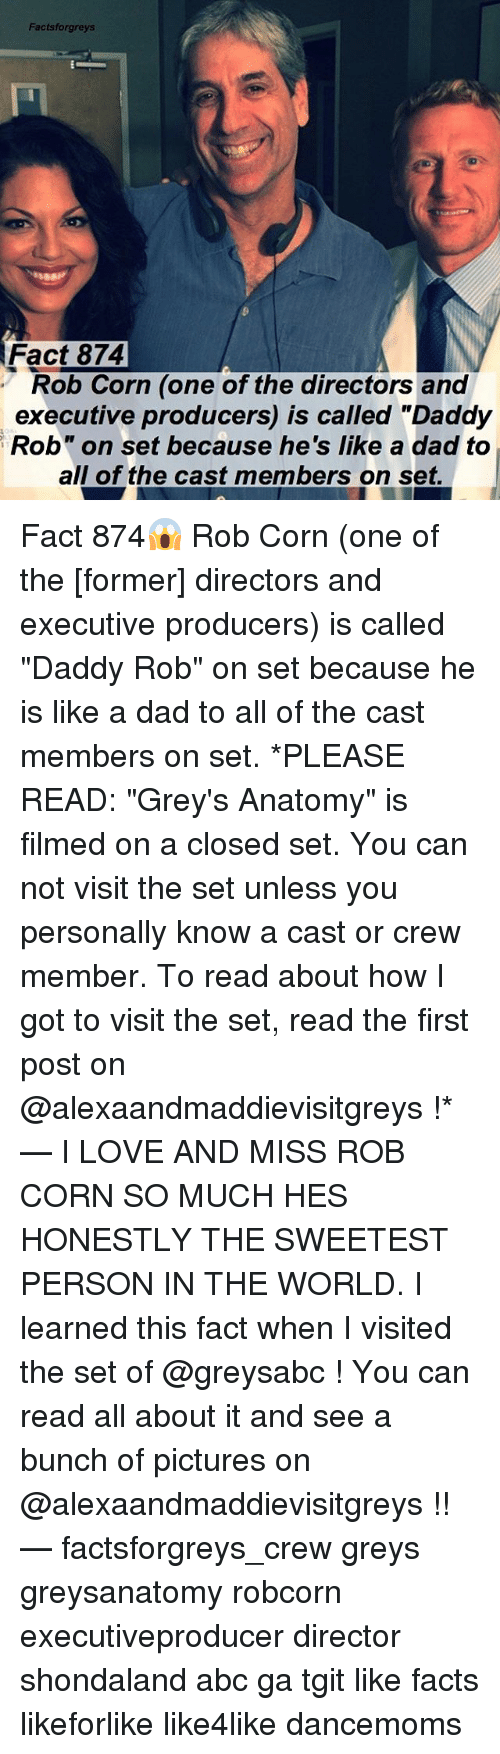 """Abc, Dad, and Facts: Factsforgreys  Fact 874  Rob Corn (one of the directors and  executive producers) is called """"Daddy  Rob"""" on set because he's like a dad to  all of the cast members on set. Fact 874😱 Rob Corn (one of the [former] directors and executive producers) is called """"Daddy Rob"""" on set because he is like a dad to all of the cast members on set. *PLEASE READ: """"Grey's Anatomy"""" is filmed on a closed set. You can not visit the set unless you personally know a cast or crew member. To read about how I got to visit the set, read the first post on @alexaandmaddievisitgreys !* — I LOVE AND MISS ROB CORN SO MUCH HES HONESTLY THE SWEETEST PERSON IN THE WORLD. I learned this fact when I visited the set of @greysabc ! You can read all about it and see a bunch of pictures on @alexaandmaddievisitgreys !! — factsforgreys_crew greys greysanatomy robcorn executiveproducer director shondaland abc ga tgit like facts likeforlike like4like dancemoms"""